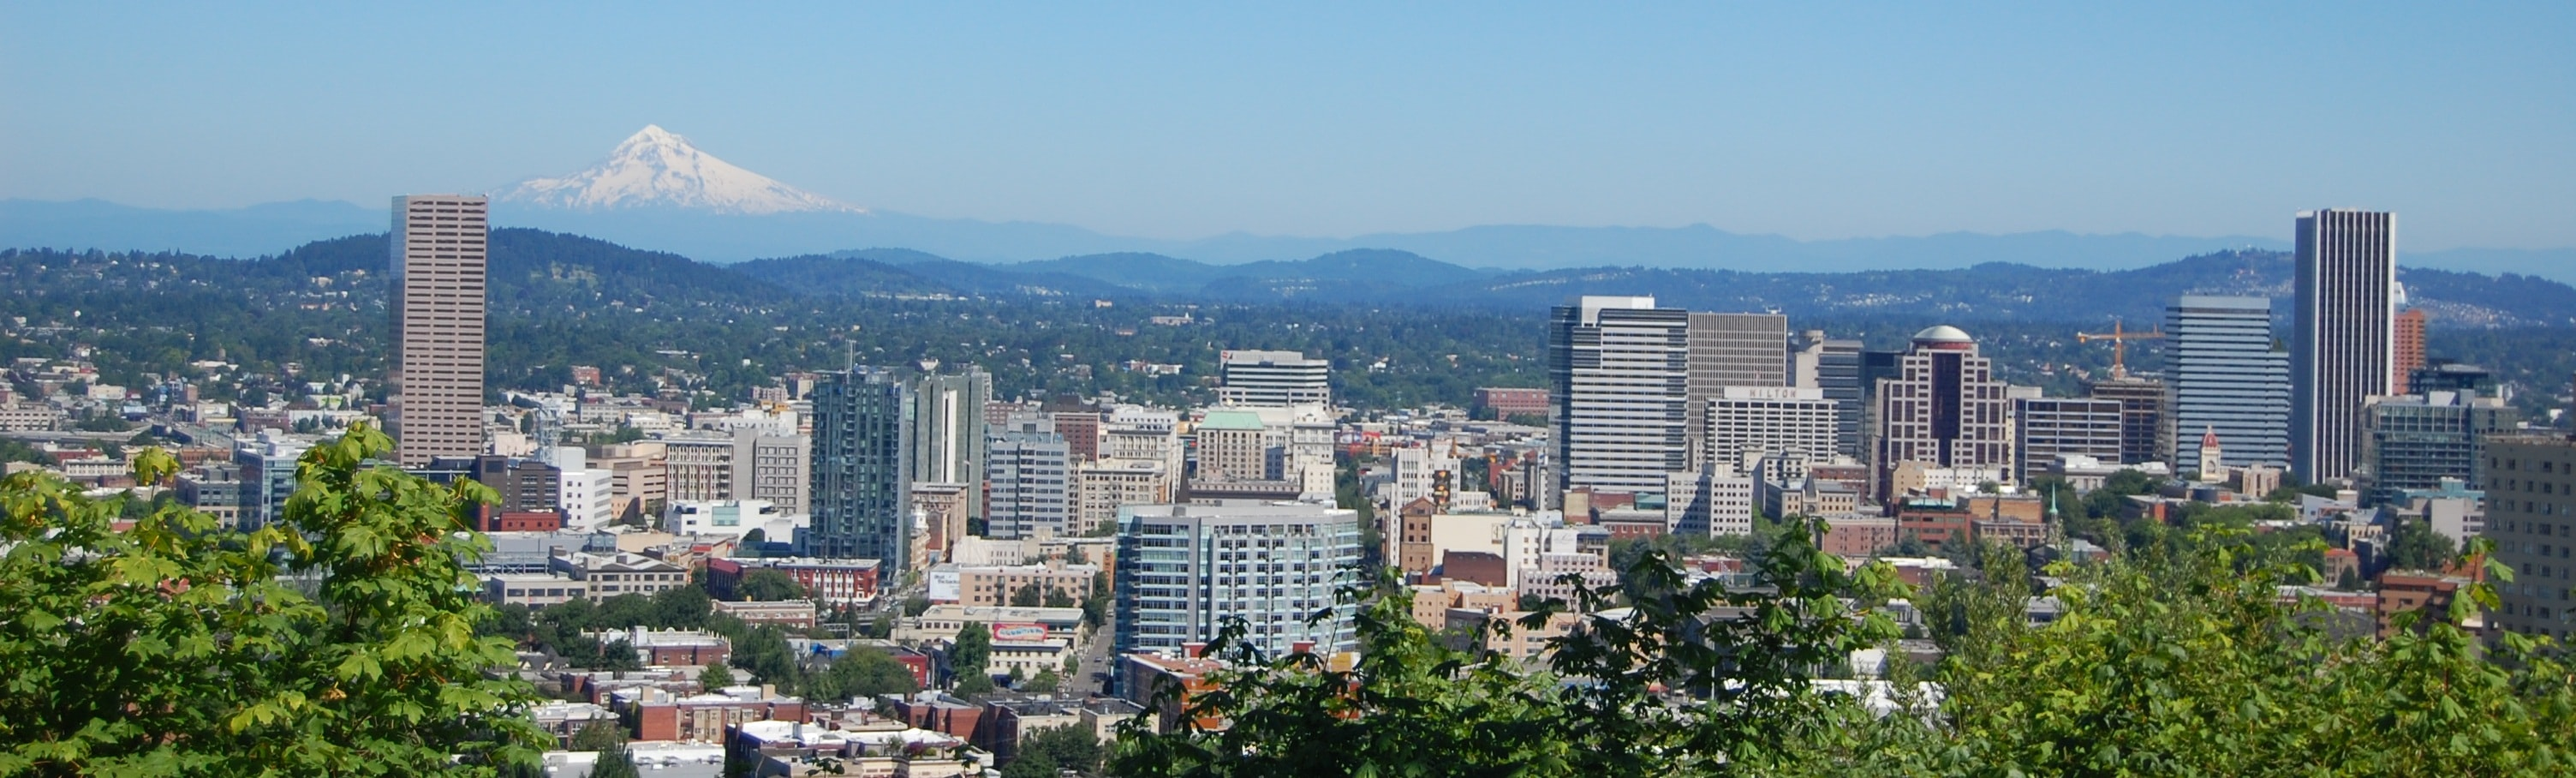 Portland Widescreen for desktop